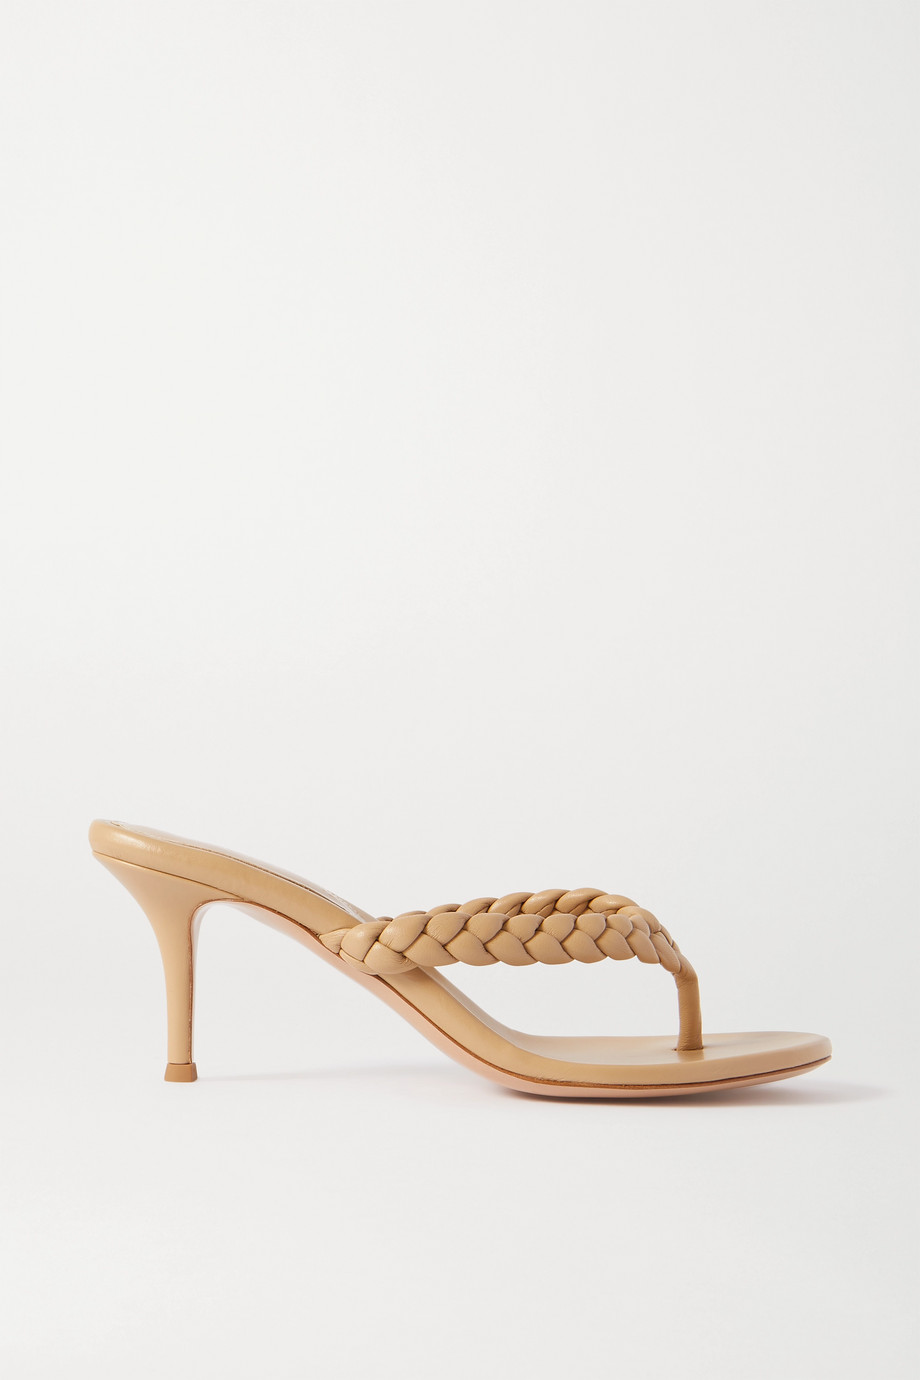 Gianvito Rossi Calypso 70 braided leather sandals